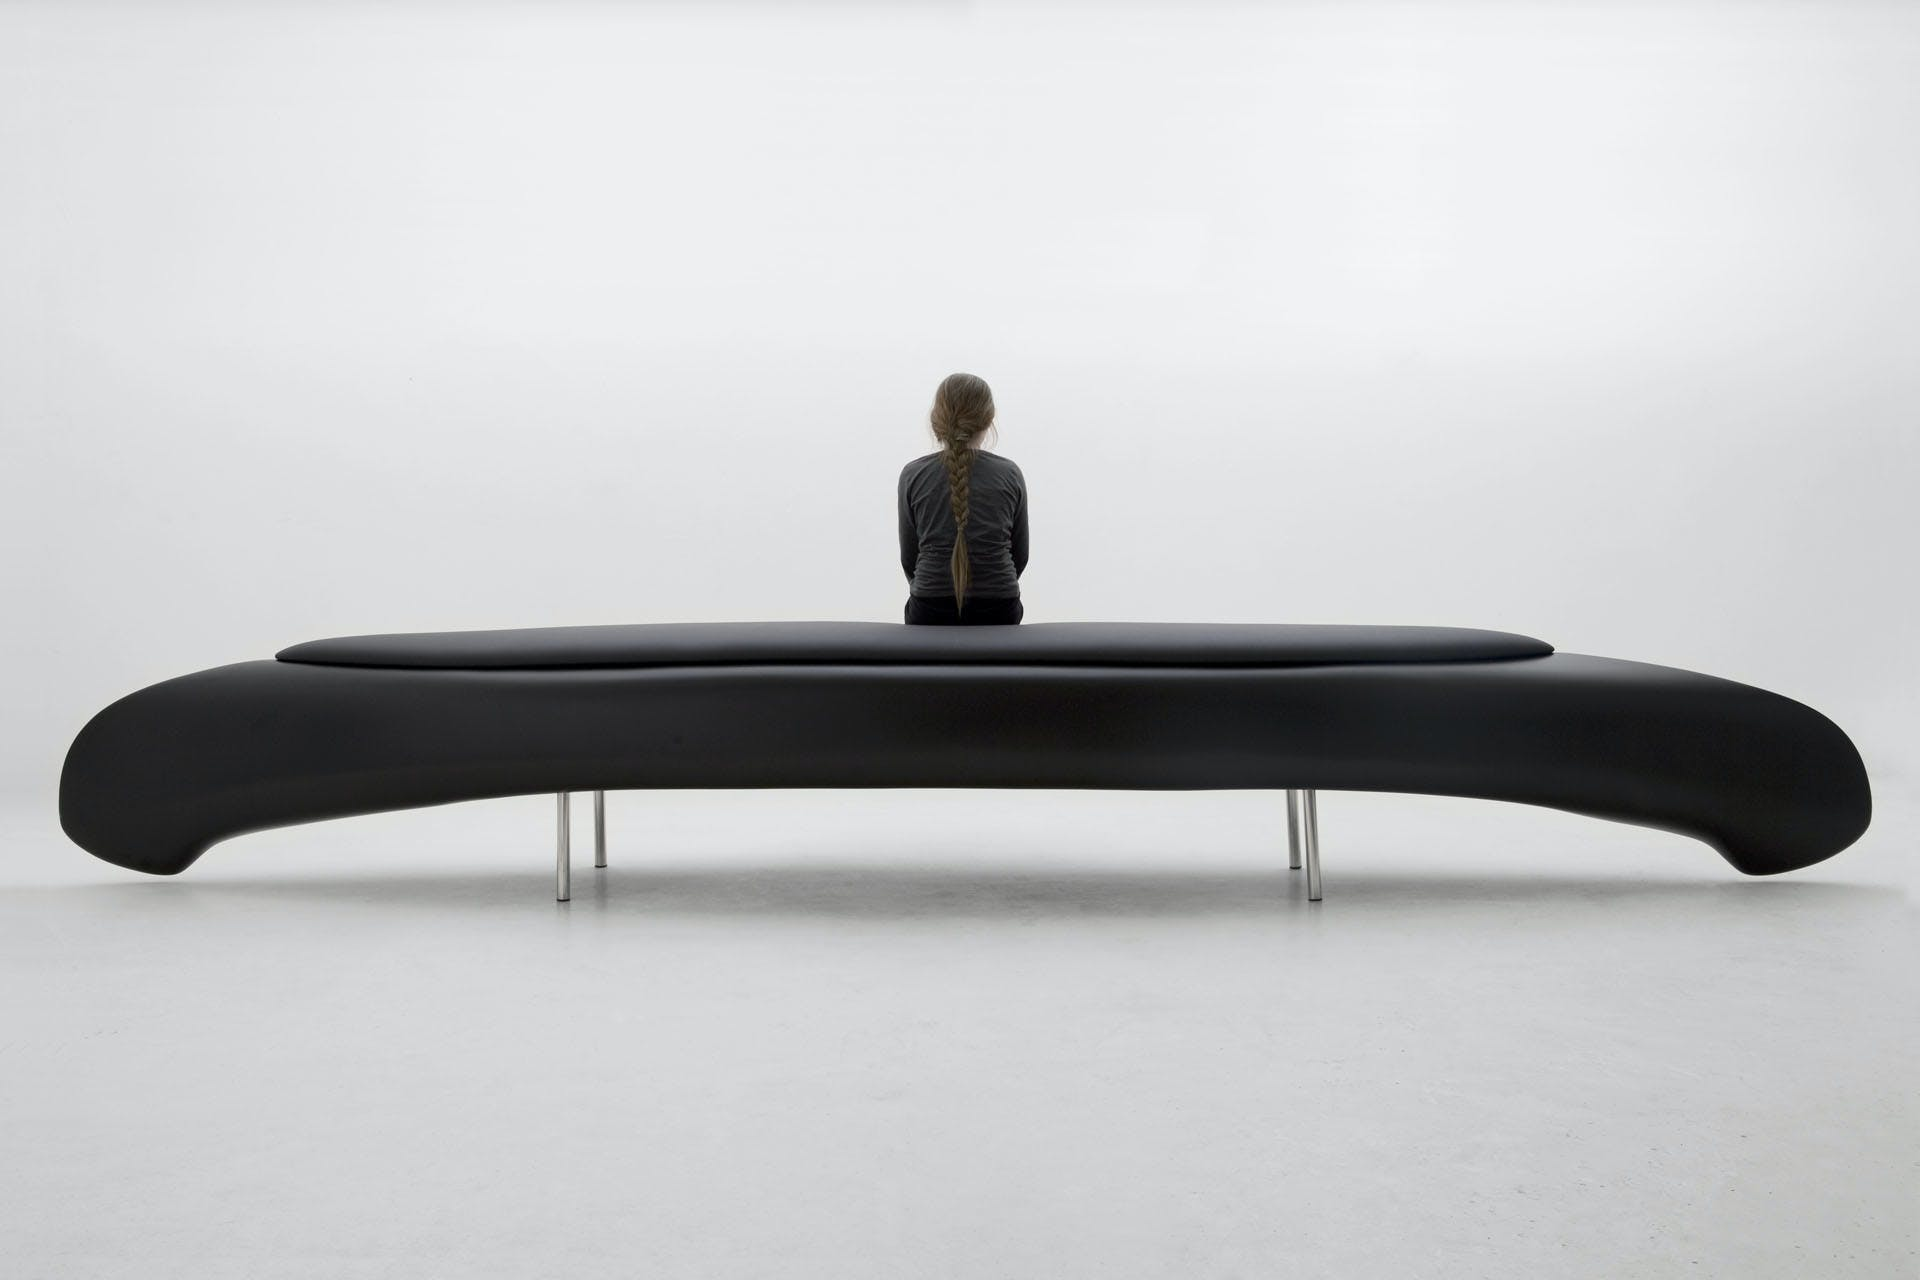 Canoa Bench By Imperfetto Lab At Haute Living